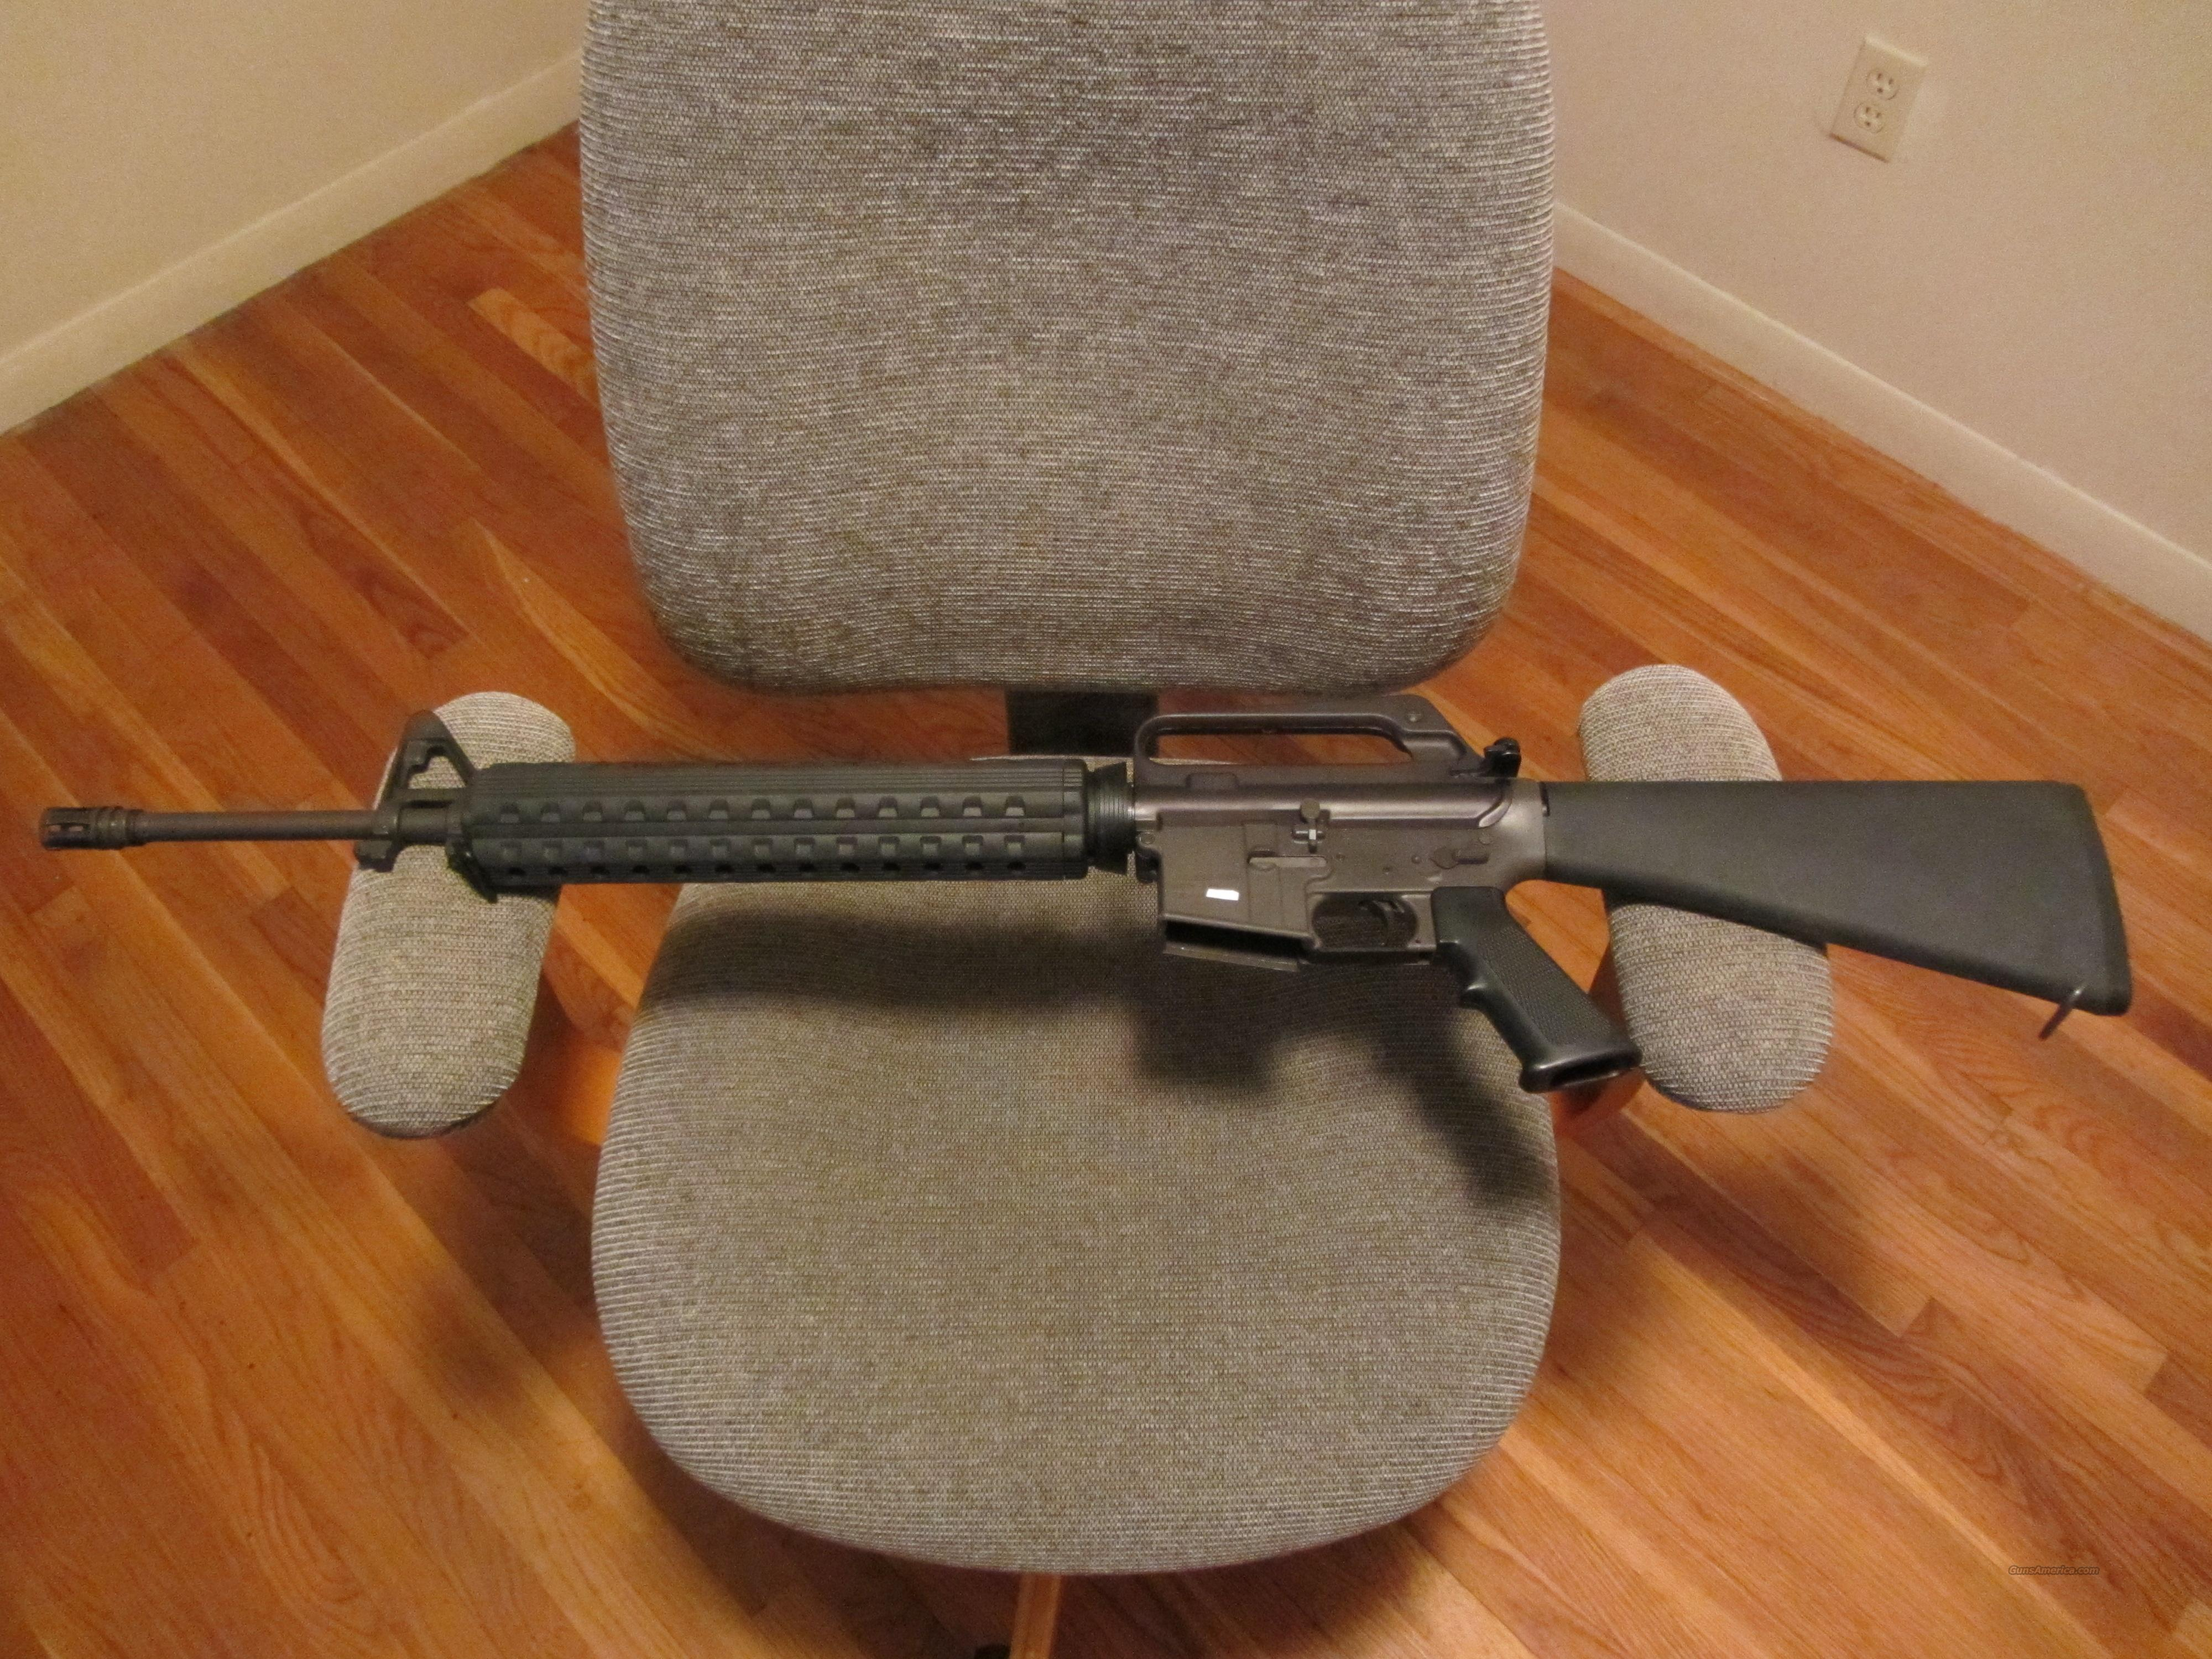 Pre Ban AR 15 Preban Essential Arms J15 like Colt   Guns > Rifles > AR-15 Rifles - Small Manufacturers > Complete Rifle